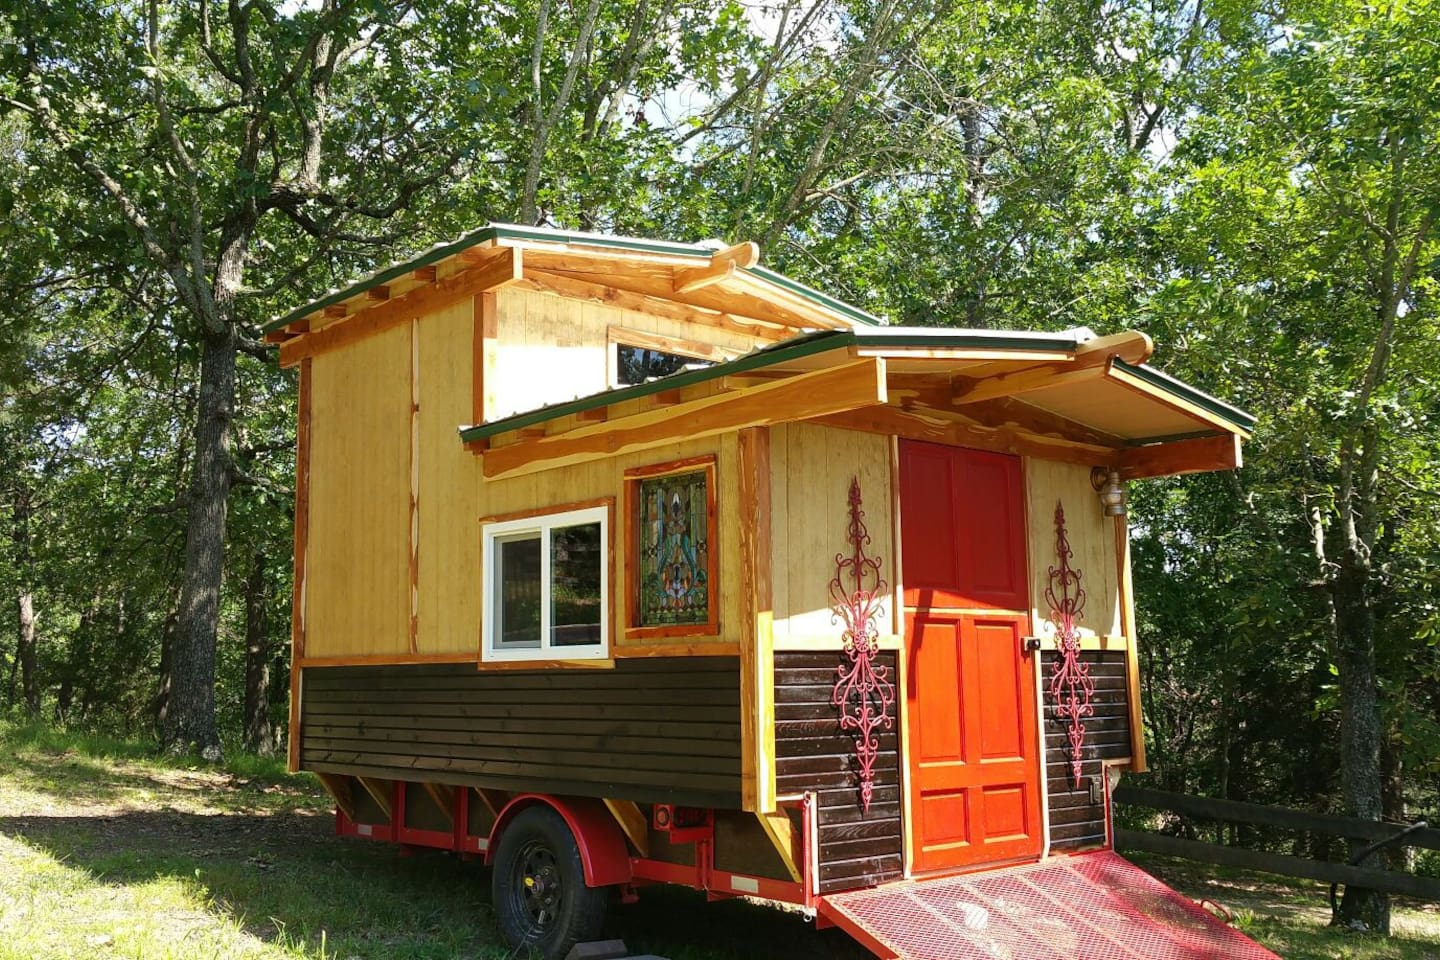 The Gypsy Wagon has 2 levels with an extra twin bed in the sleeping loft.